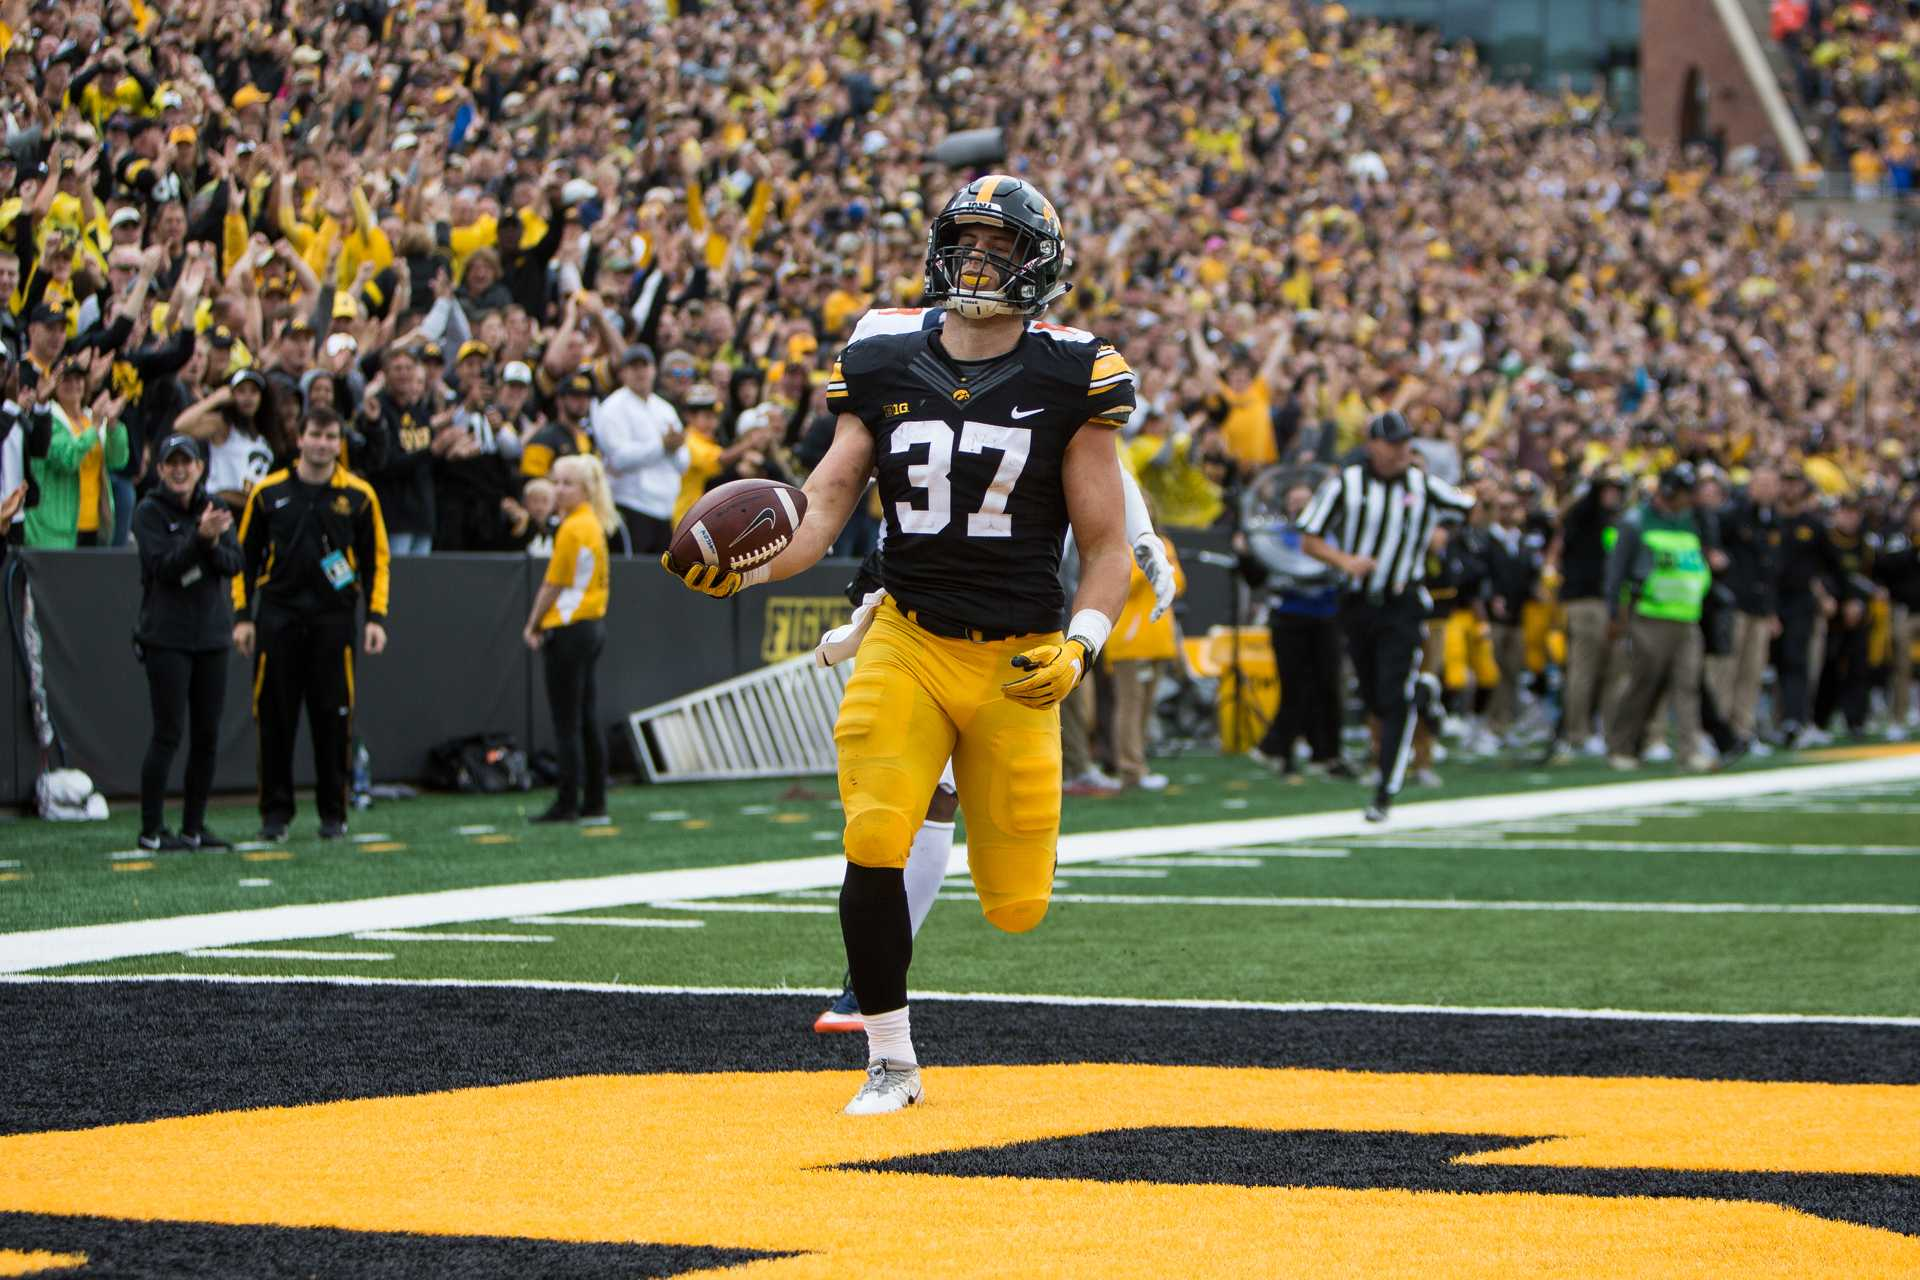 Iowa defensive back Brandon Snyder crosses the goal line after returning an interception for an 89 yard touchdown during the Iowa/Illinois football game on Saturday, 7 Oct. 2017. Iowa won the game 45 to 16. (David Harmantas/The Daily Iowan)